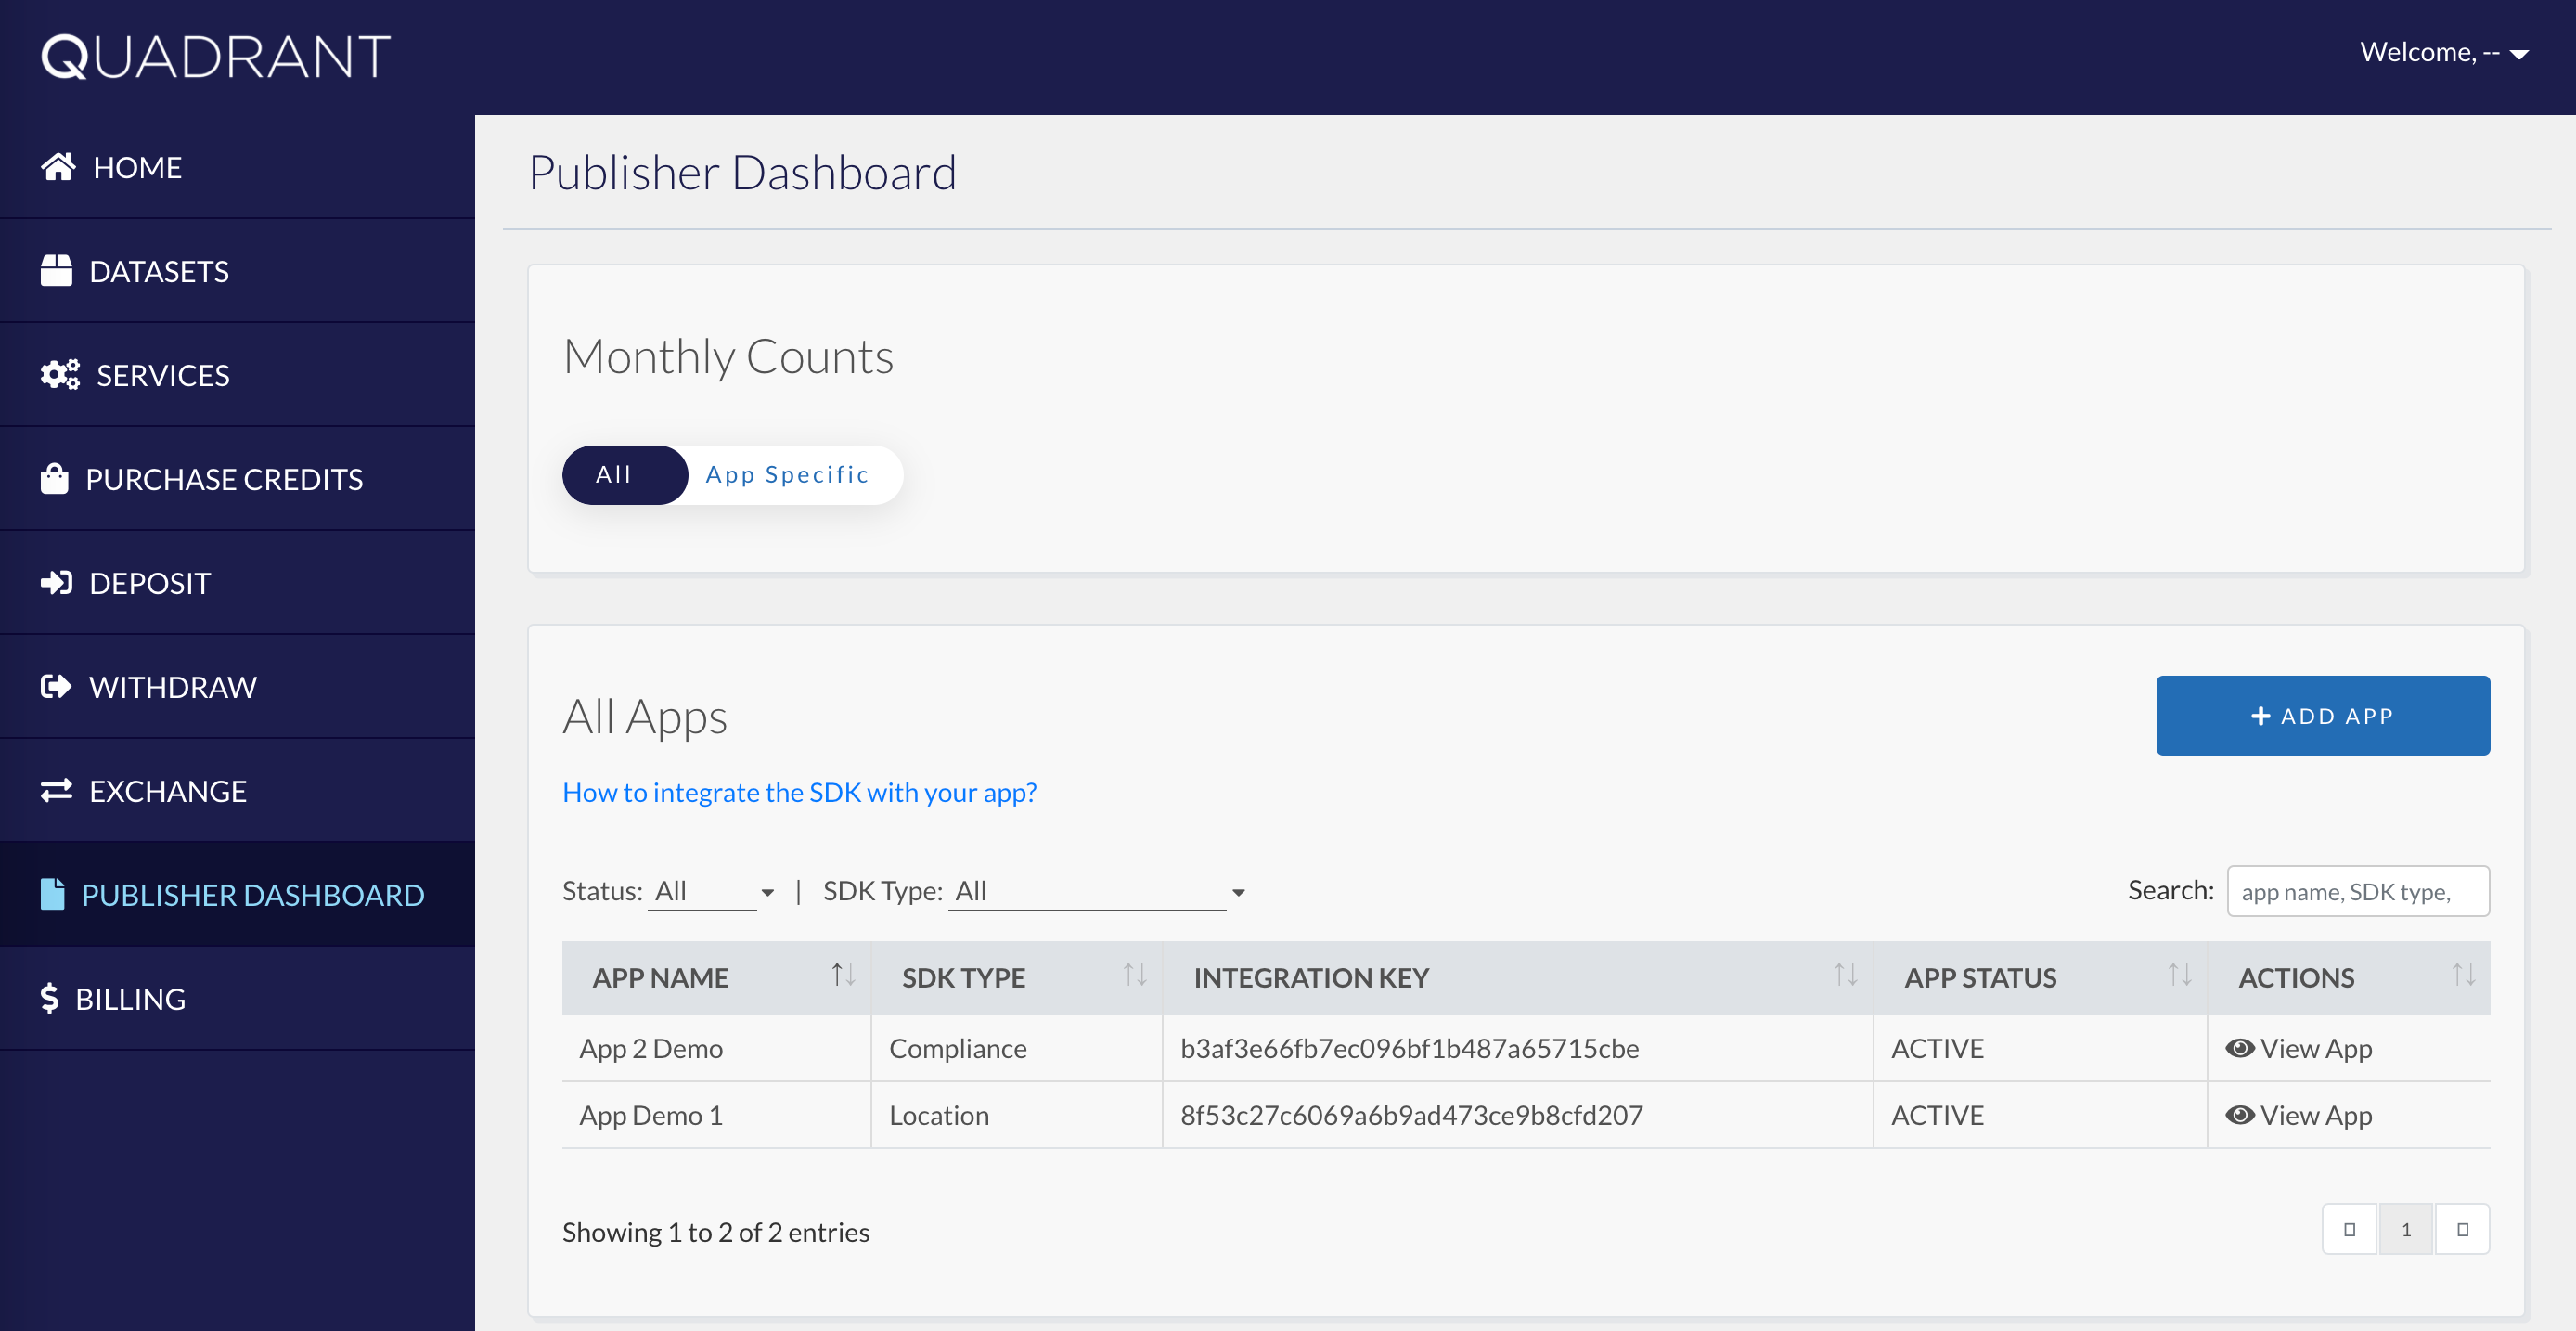 qcmp_publisher_dashboard